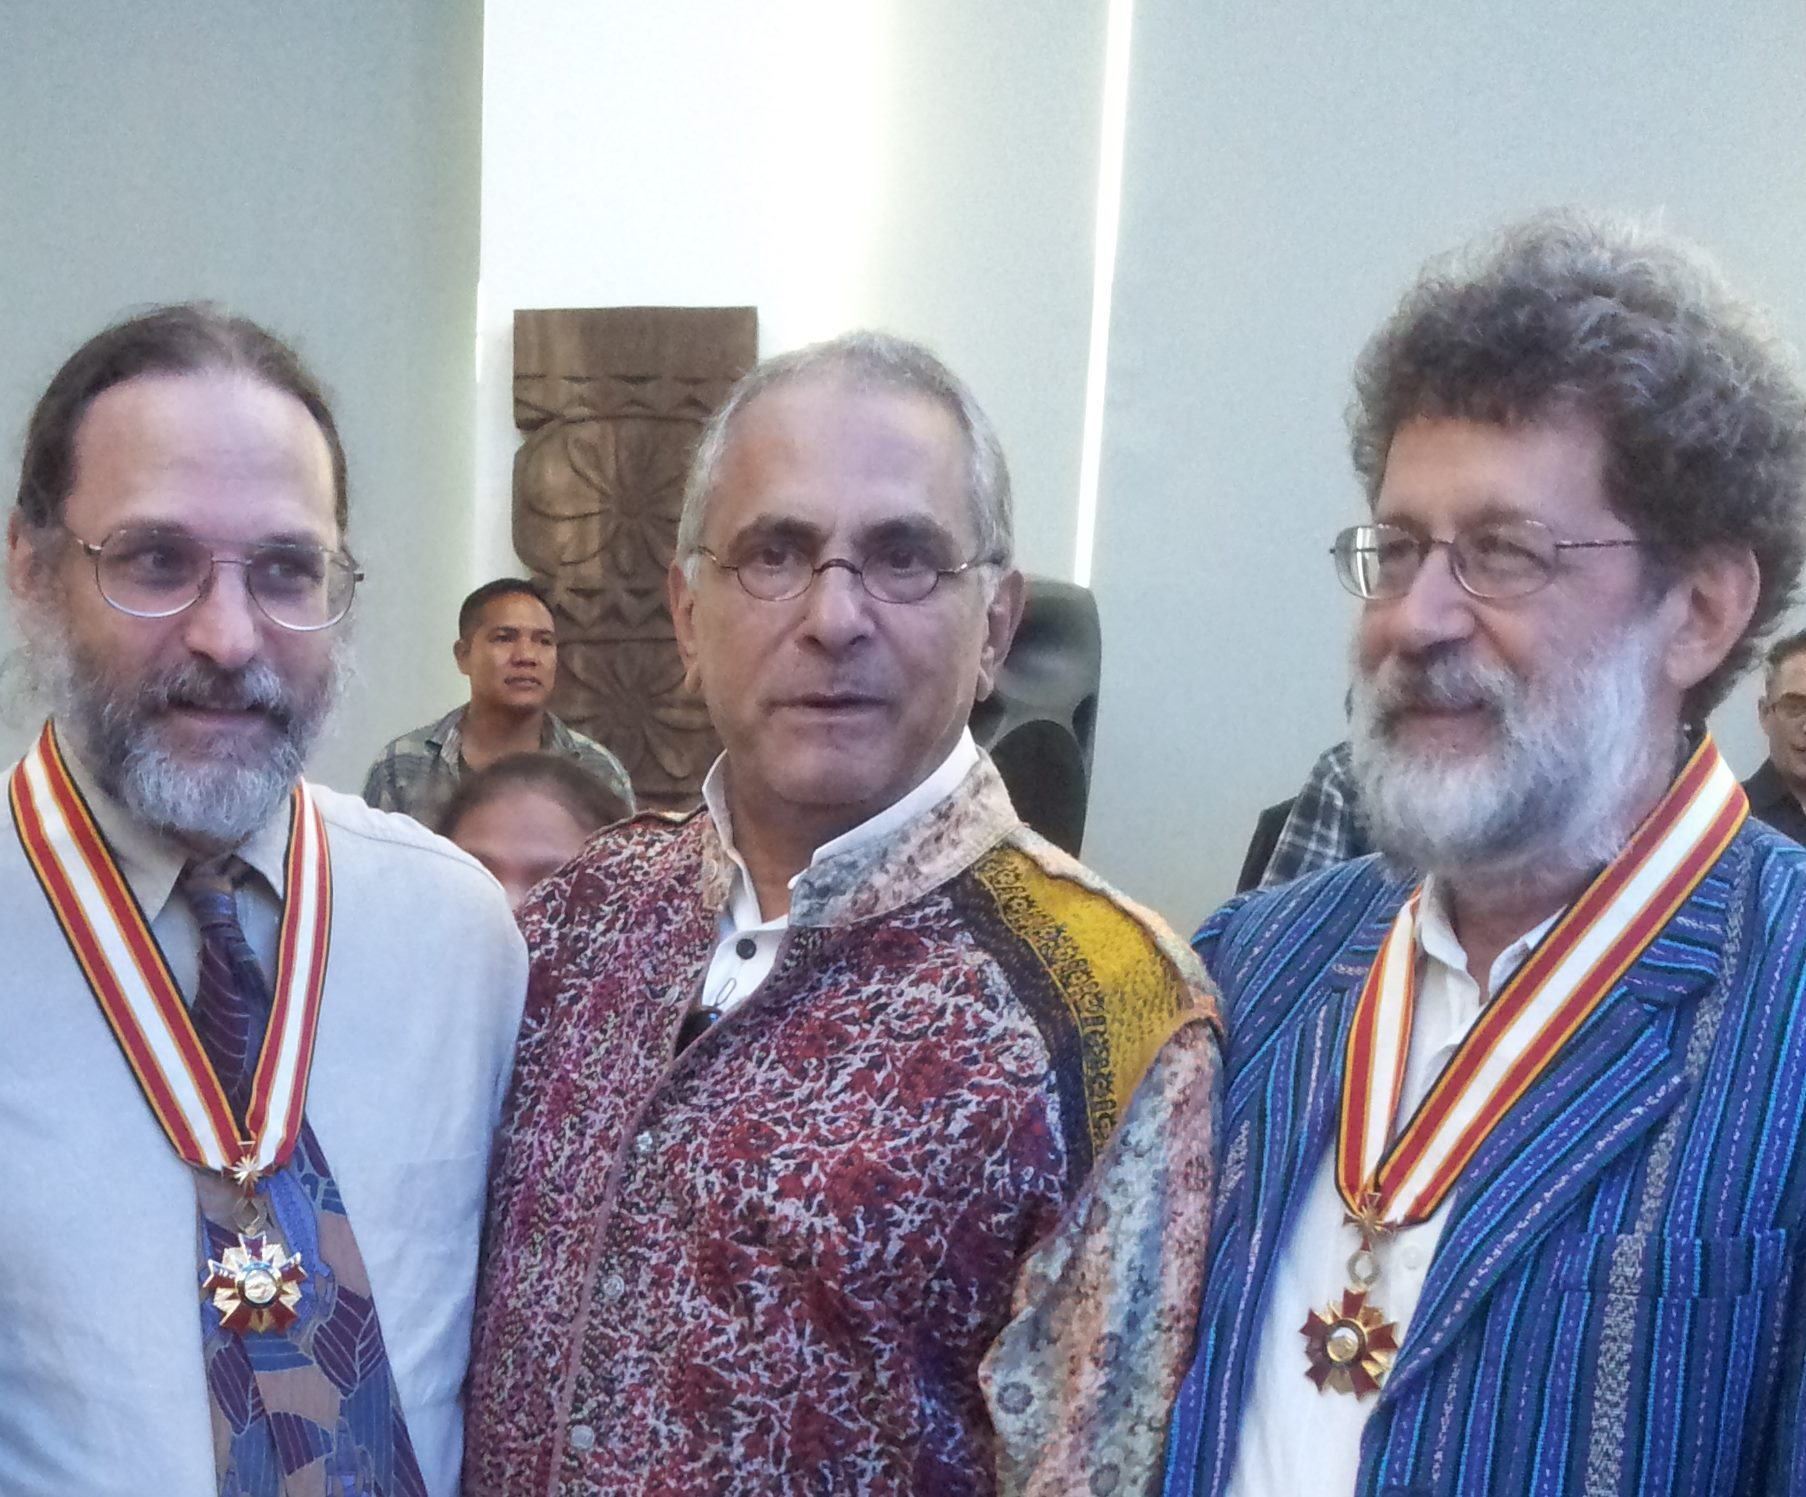 ETAN's John M. Miller and Charles Scheiner with Jose Ramos-Horta